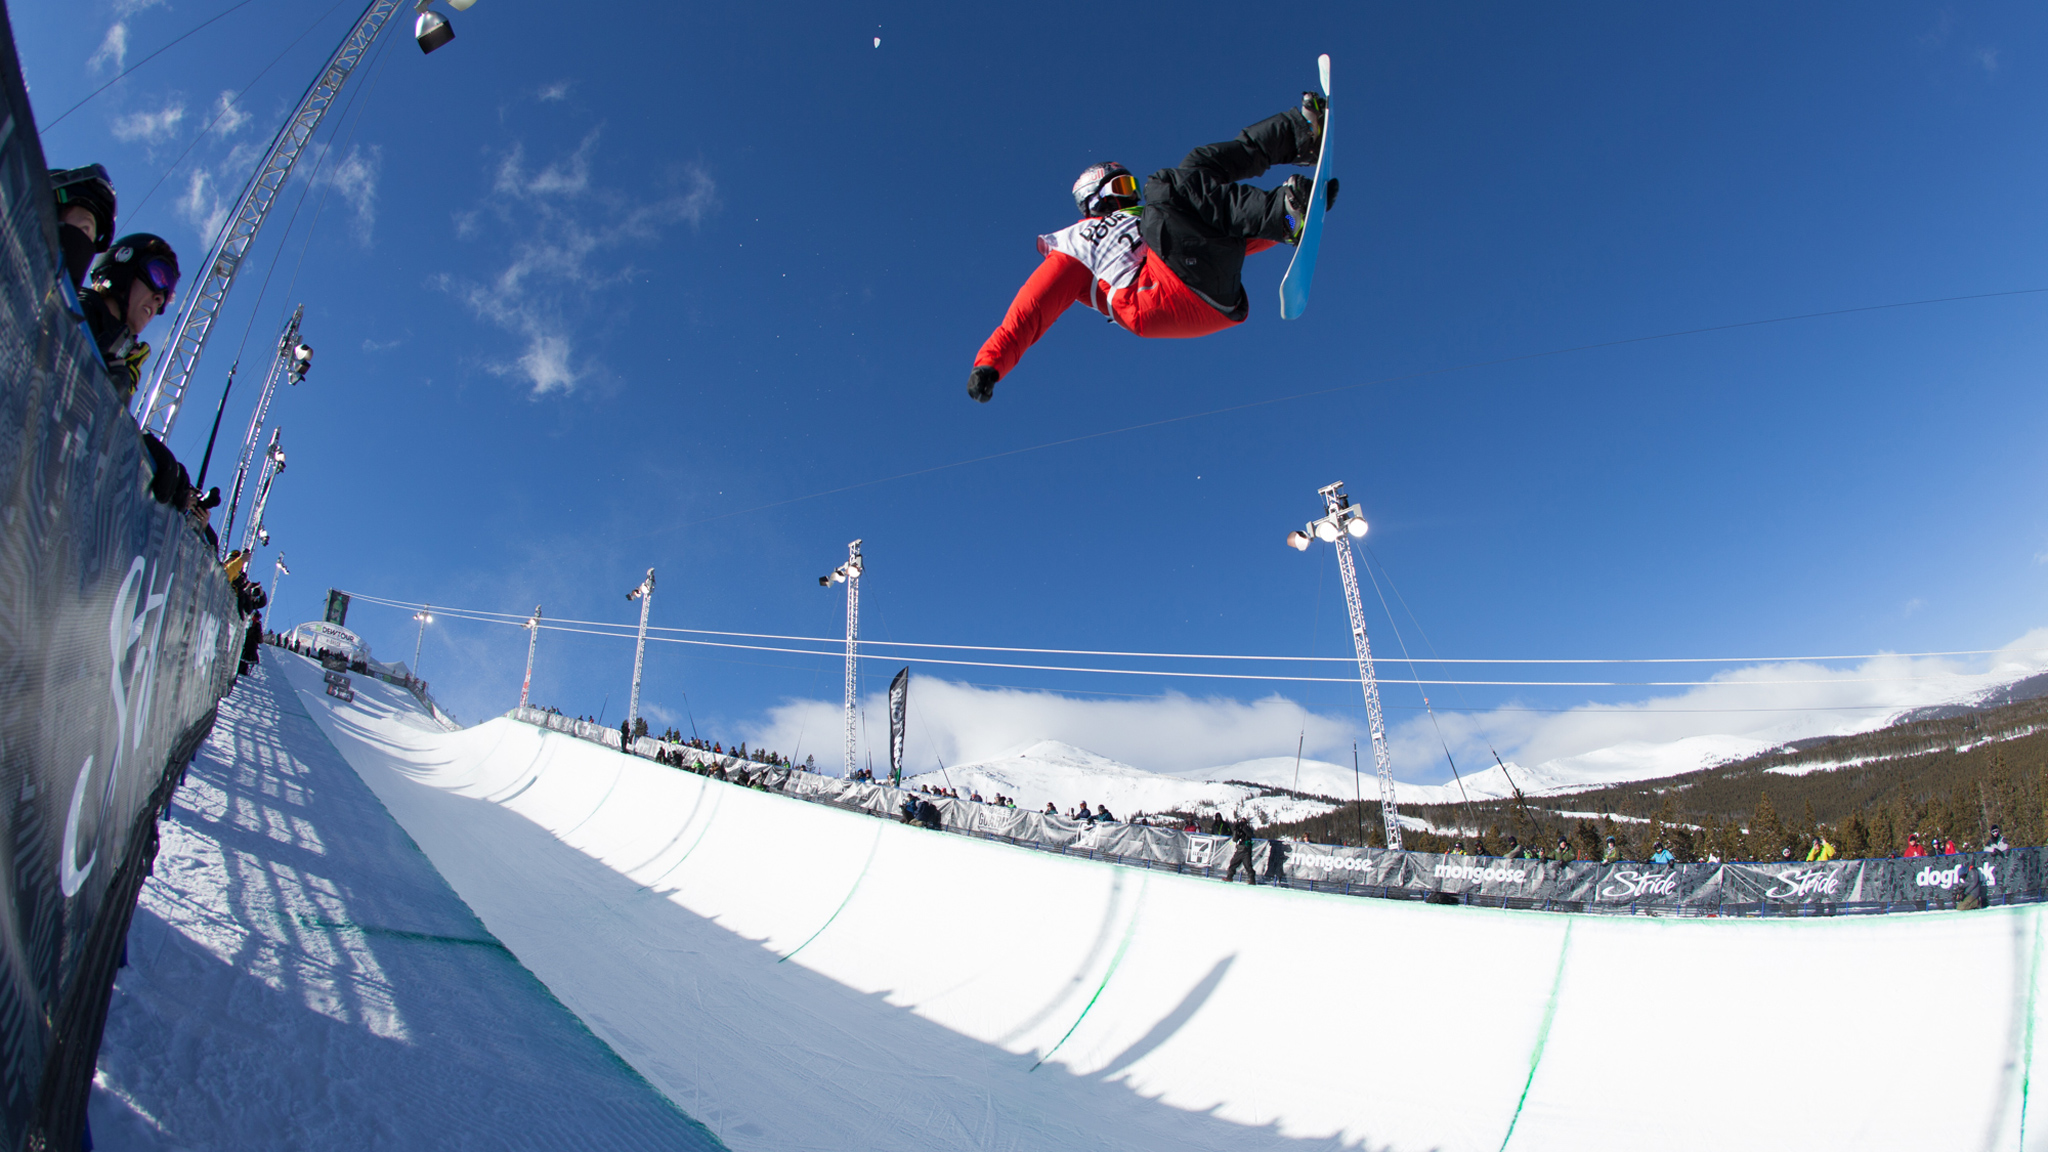 Greg Bretz, Superpipe winner